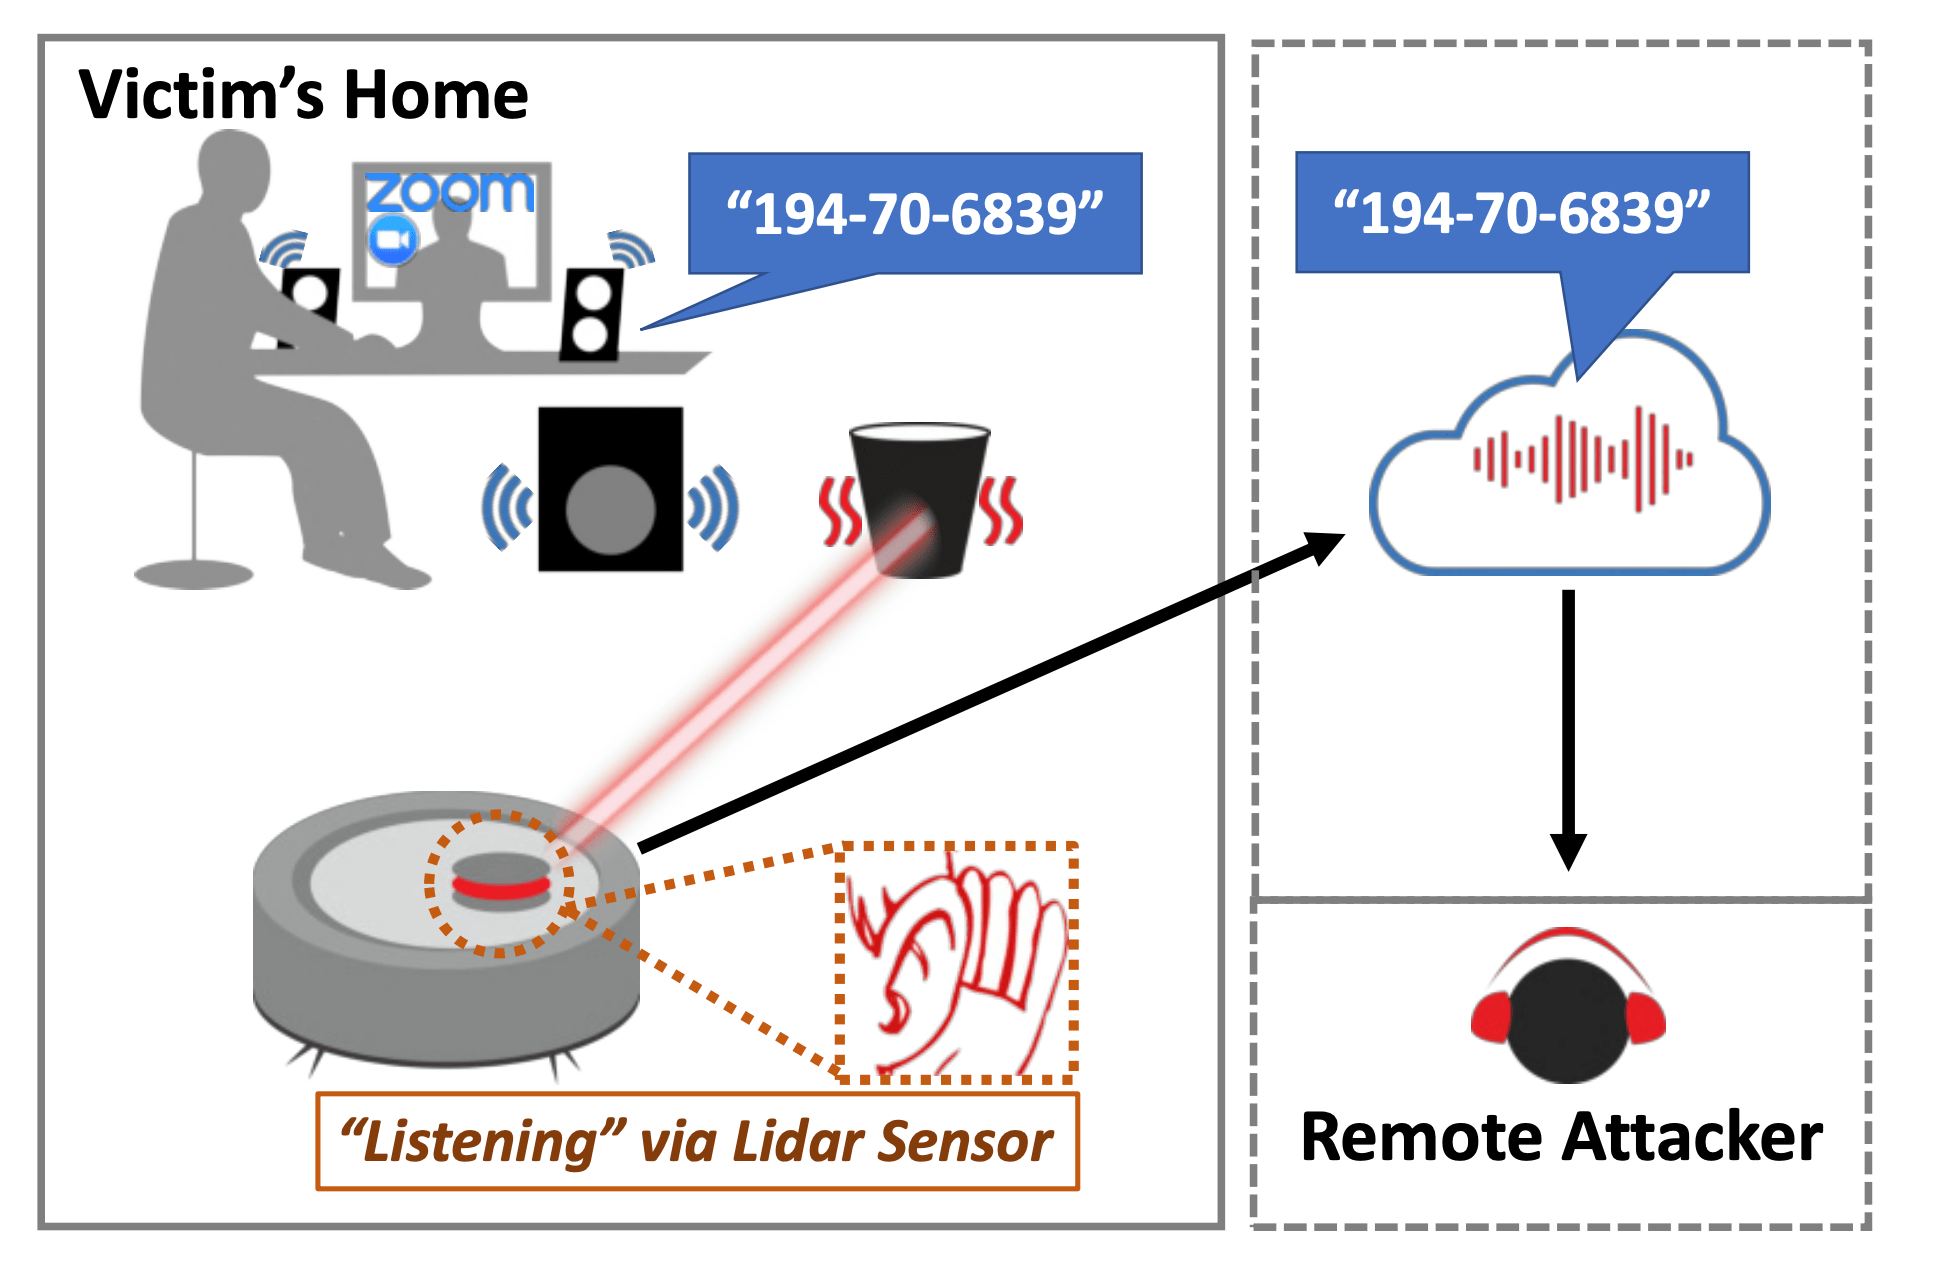 Screenshot of a graphic from an academic paper showing how the scientists used a robotic vacuum cleaner's laser vision system to eavesdrop on the occupant's conversations